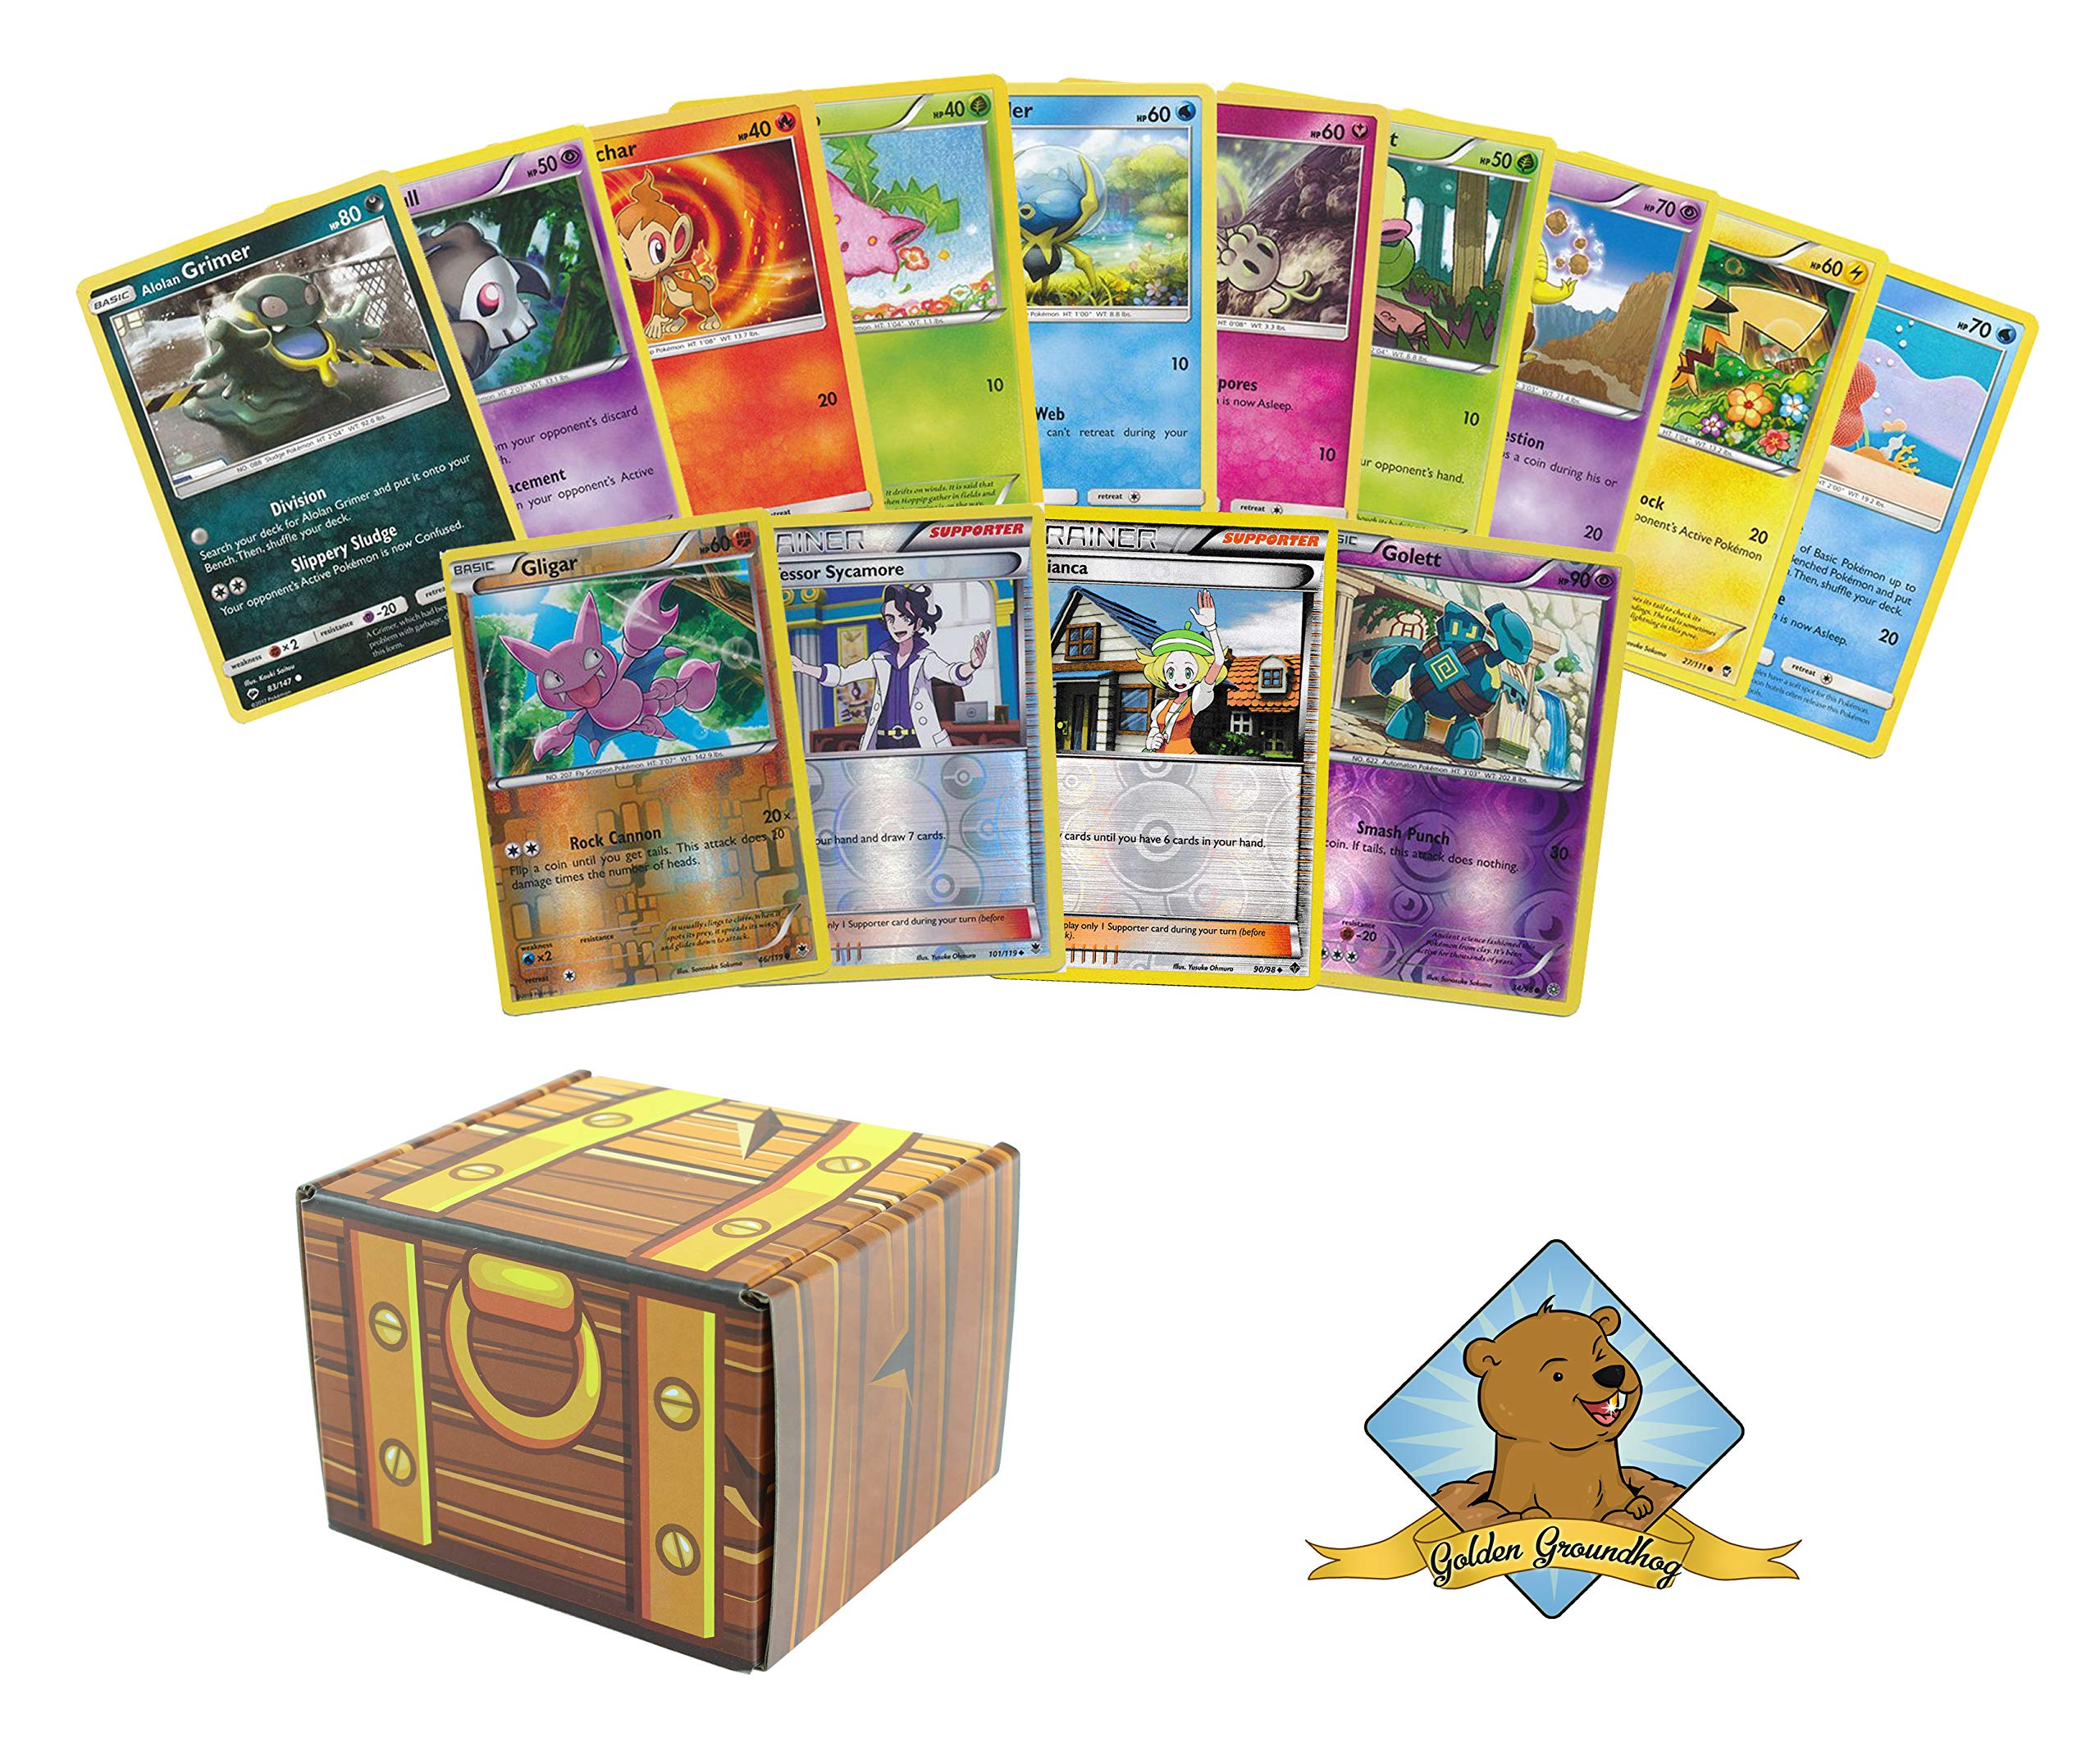 50 Assorted Pokemon Cards 4 Reverse Foils! Includes Golden Groundhog Treasure Chest Box!